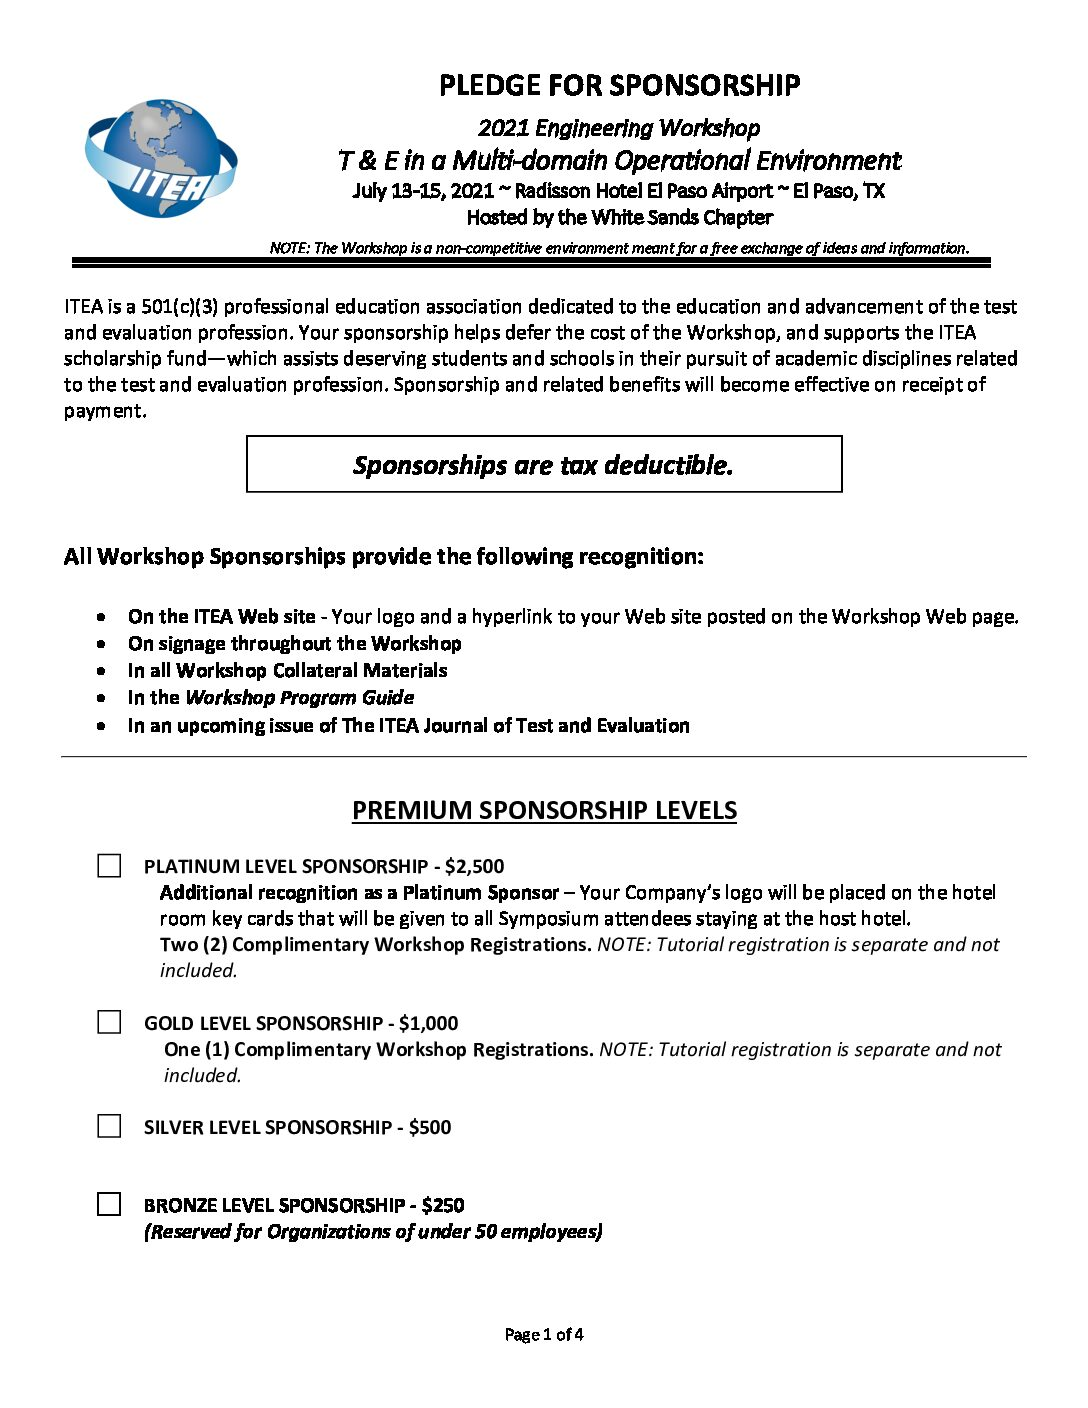 2021 MDO Workshop Sponsorship Pledge Form